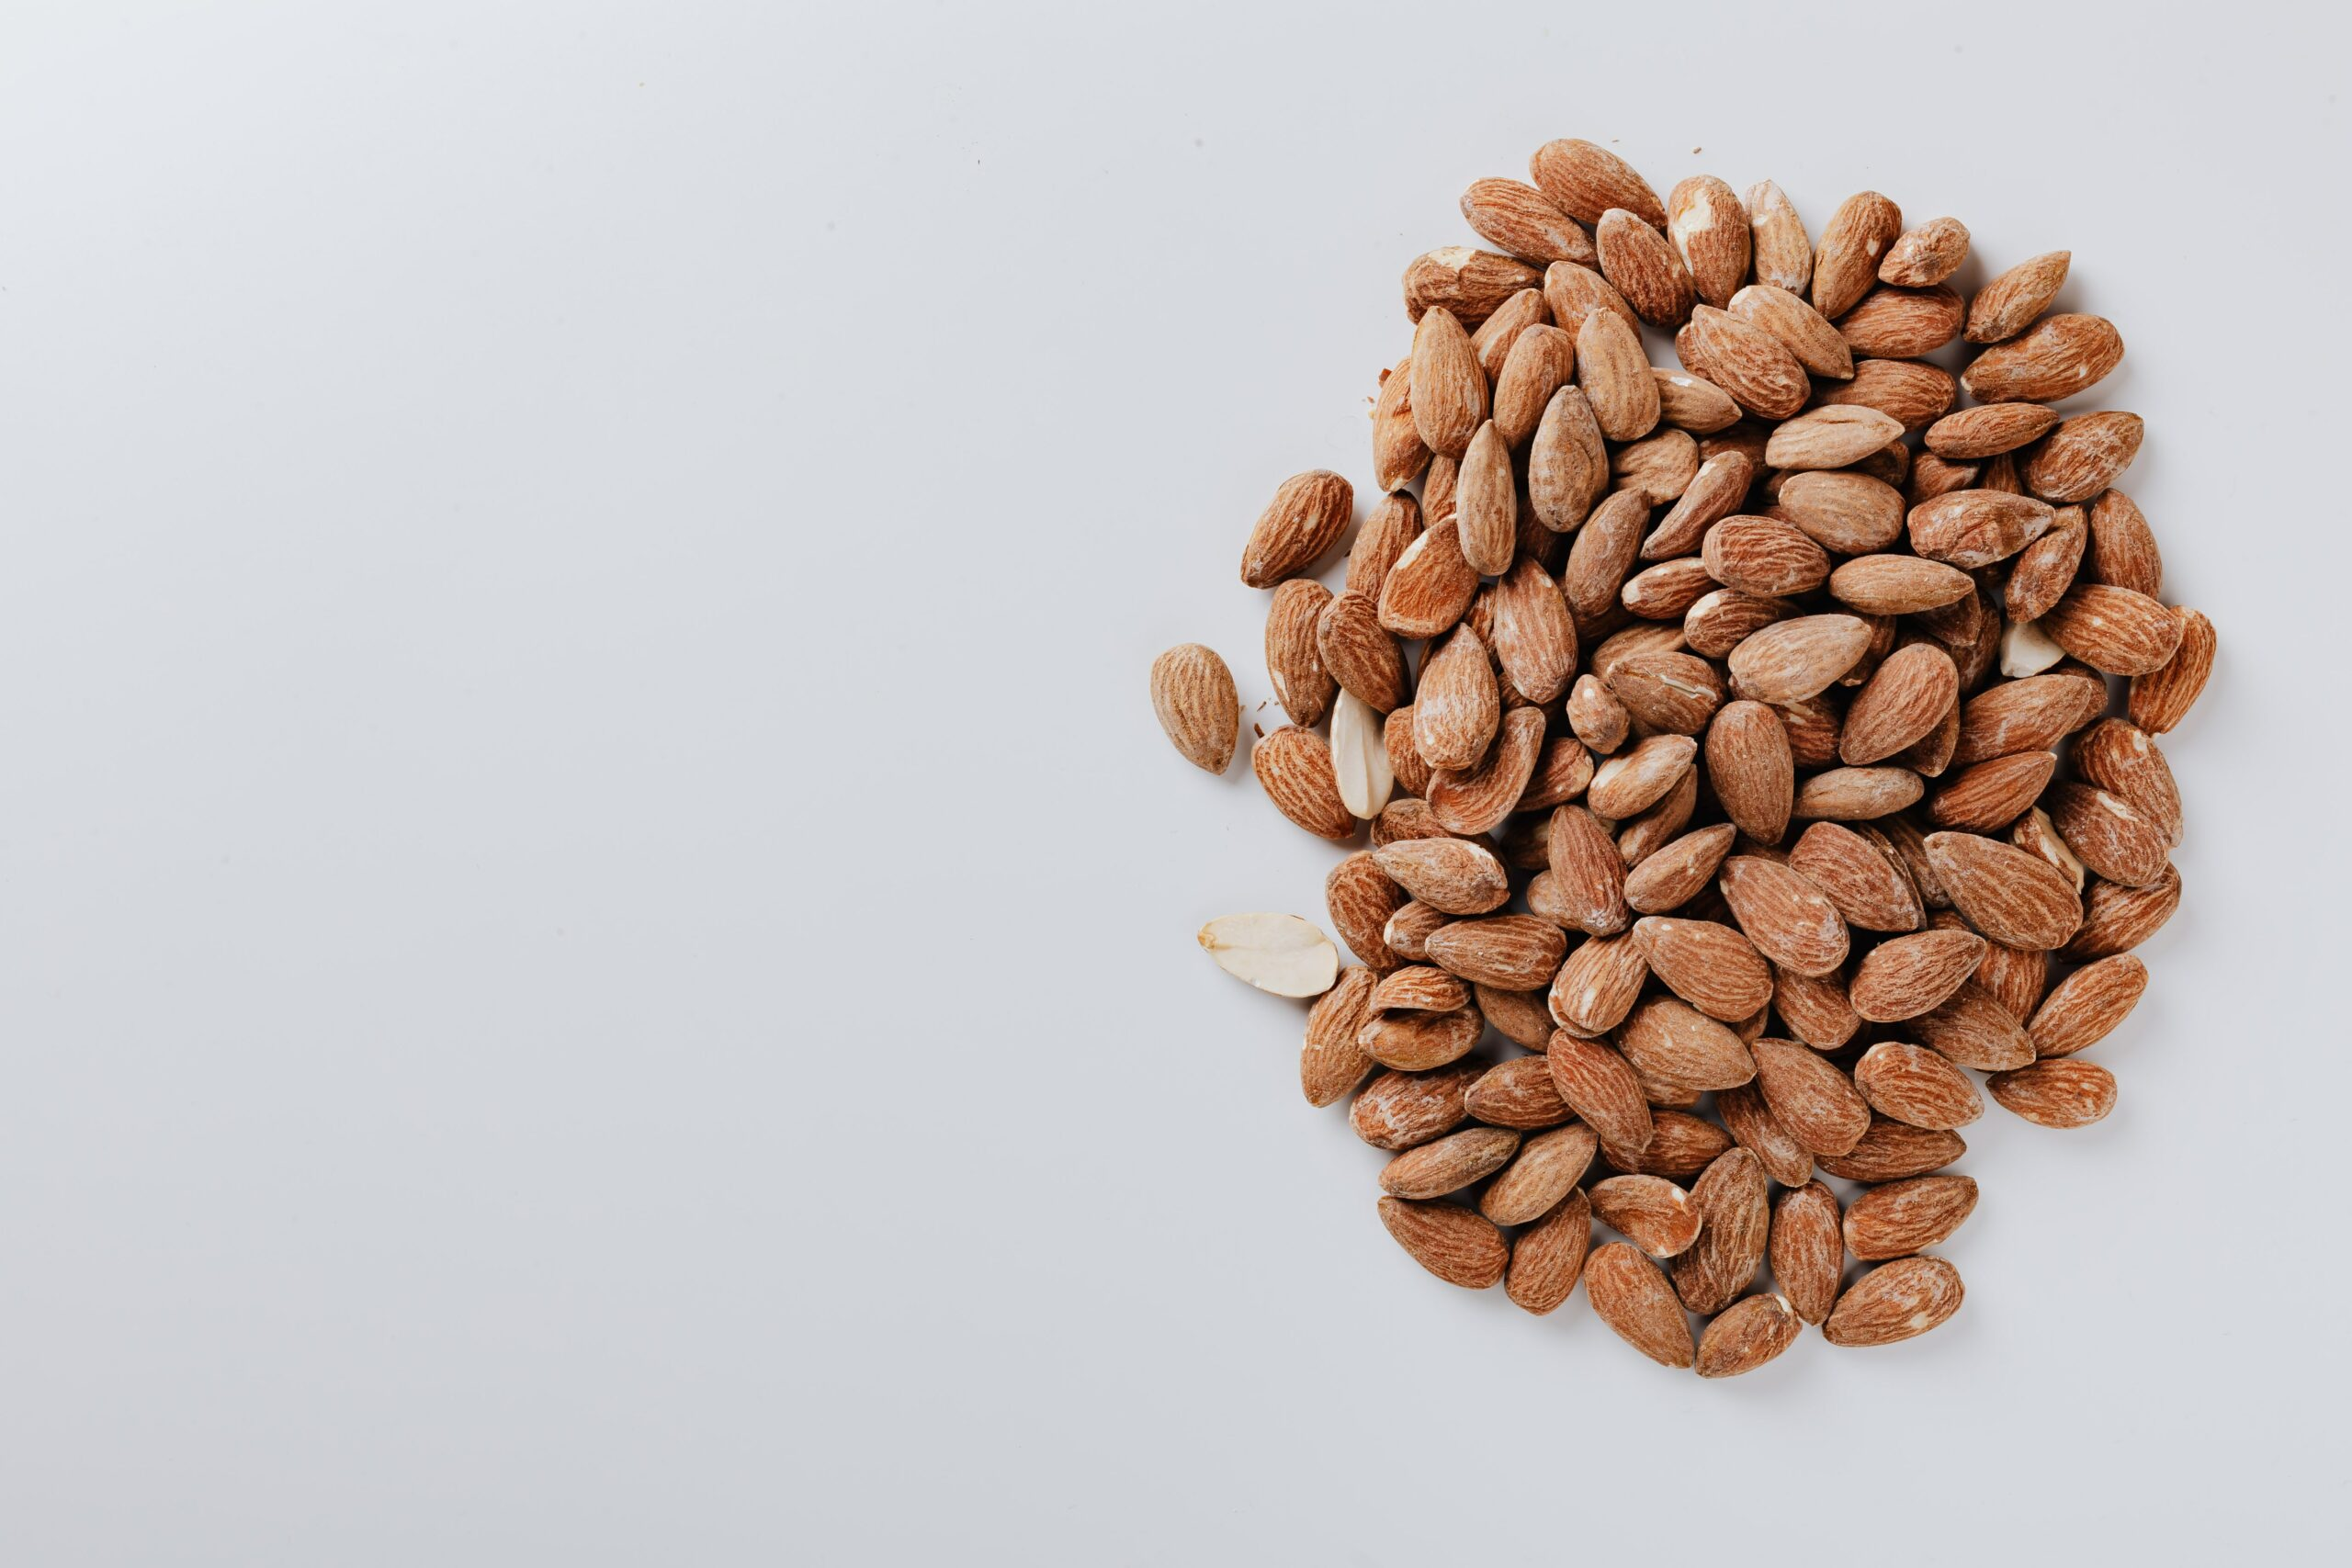 Could Almonds Help Manage Diabetes And Depression